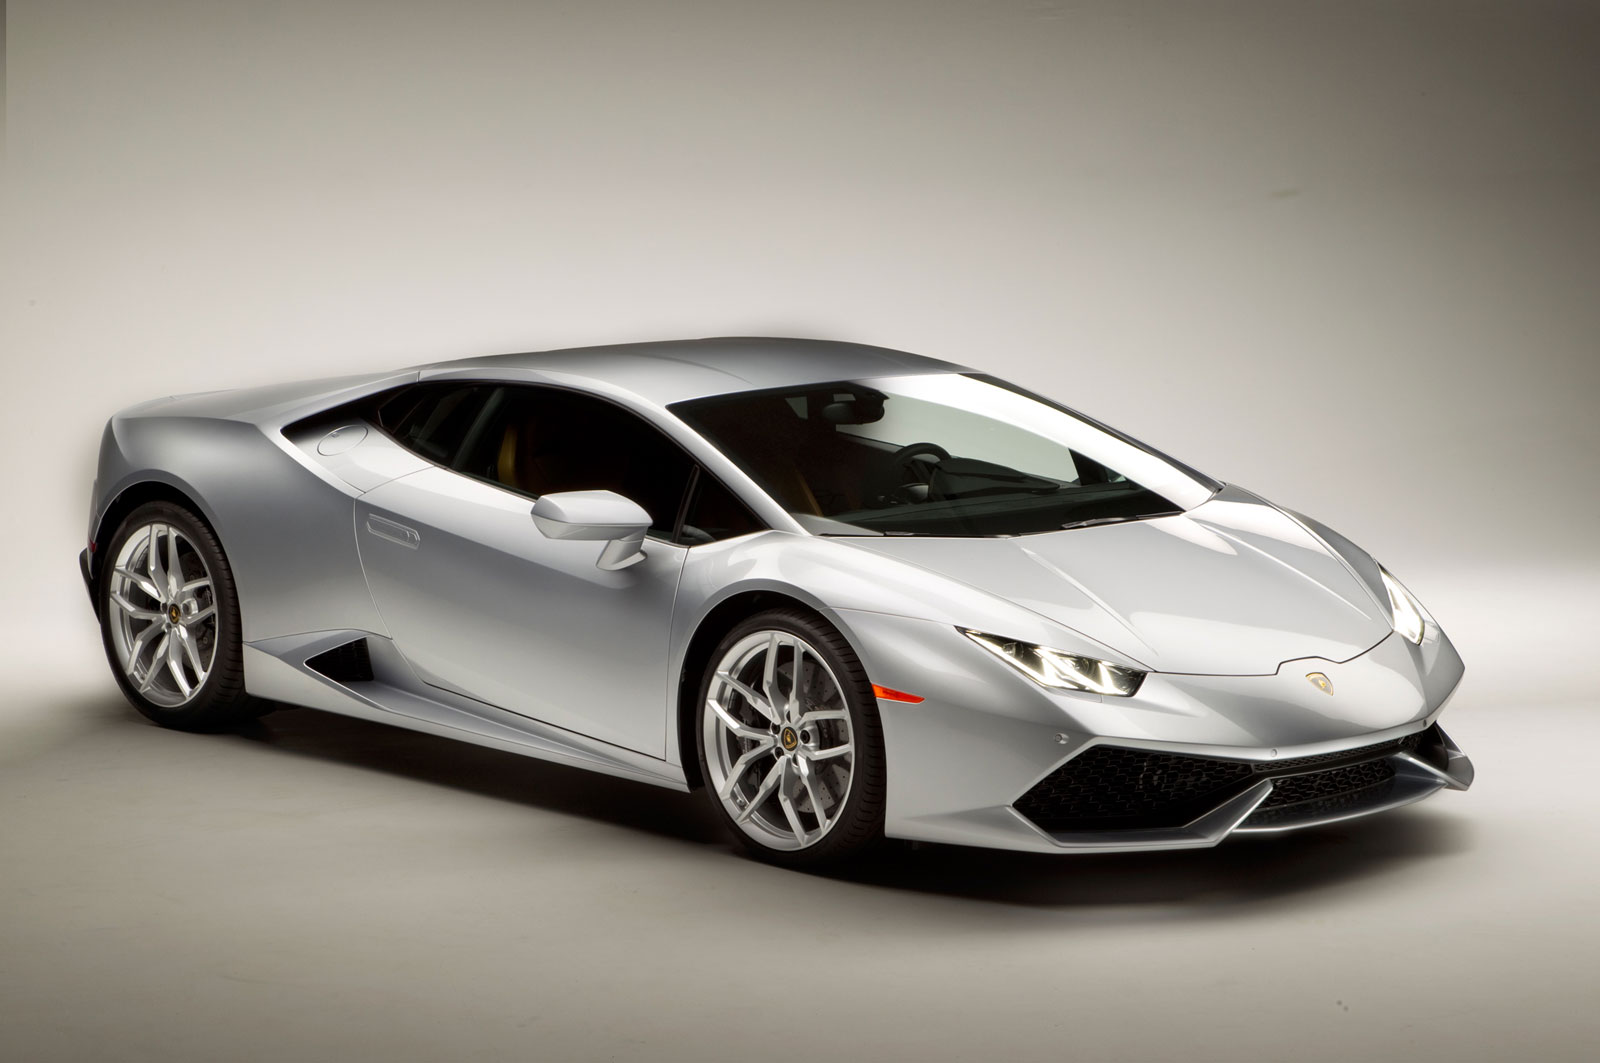 Welcome to the show of insane speed with Lamborghini 2014 model, Huracan LP610-4 #10